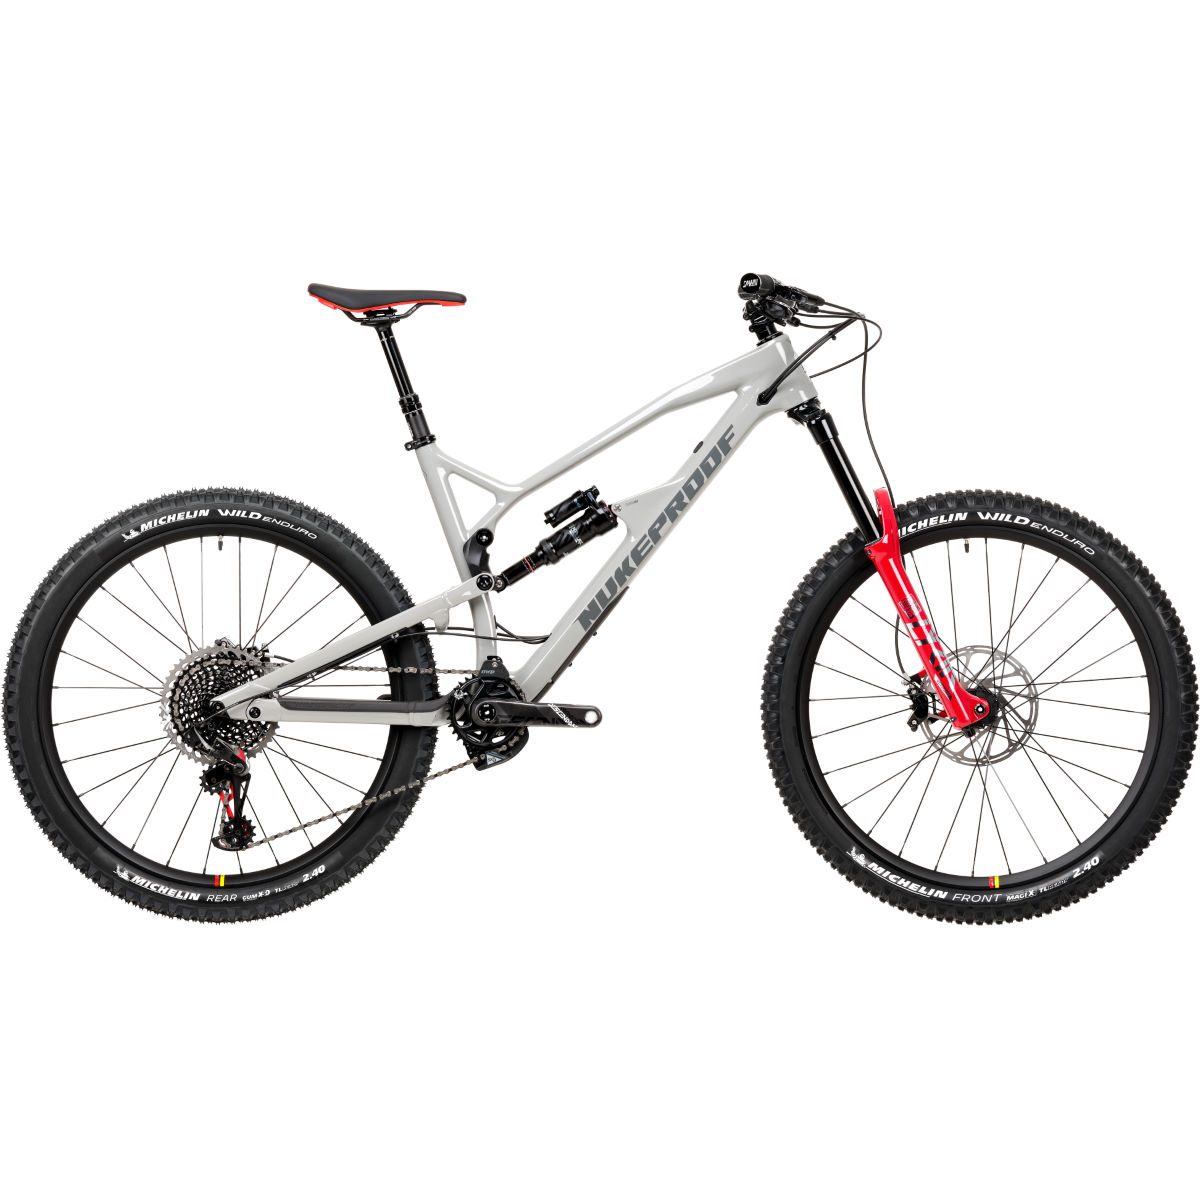 Nukeproof Mega 275 RS Carbon XO1 Eagle 2020 Full